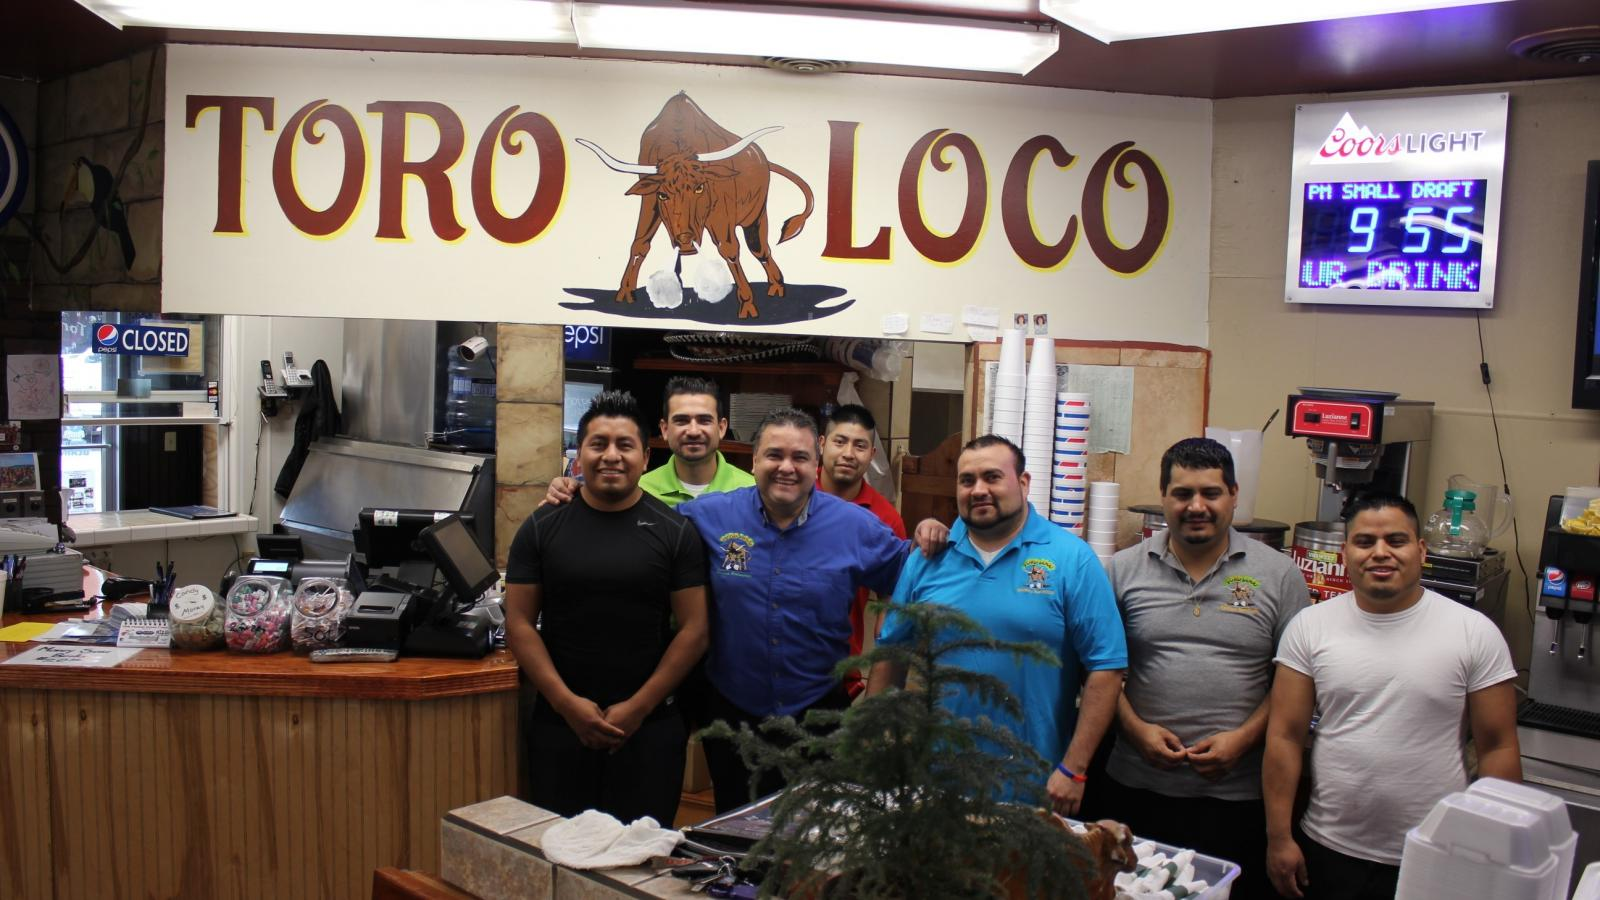 Mario and his employees at Toro Loco